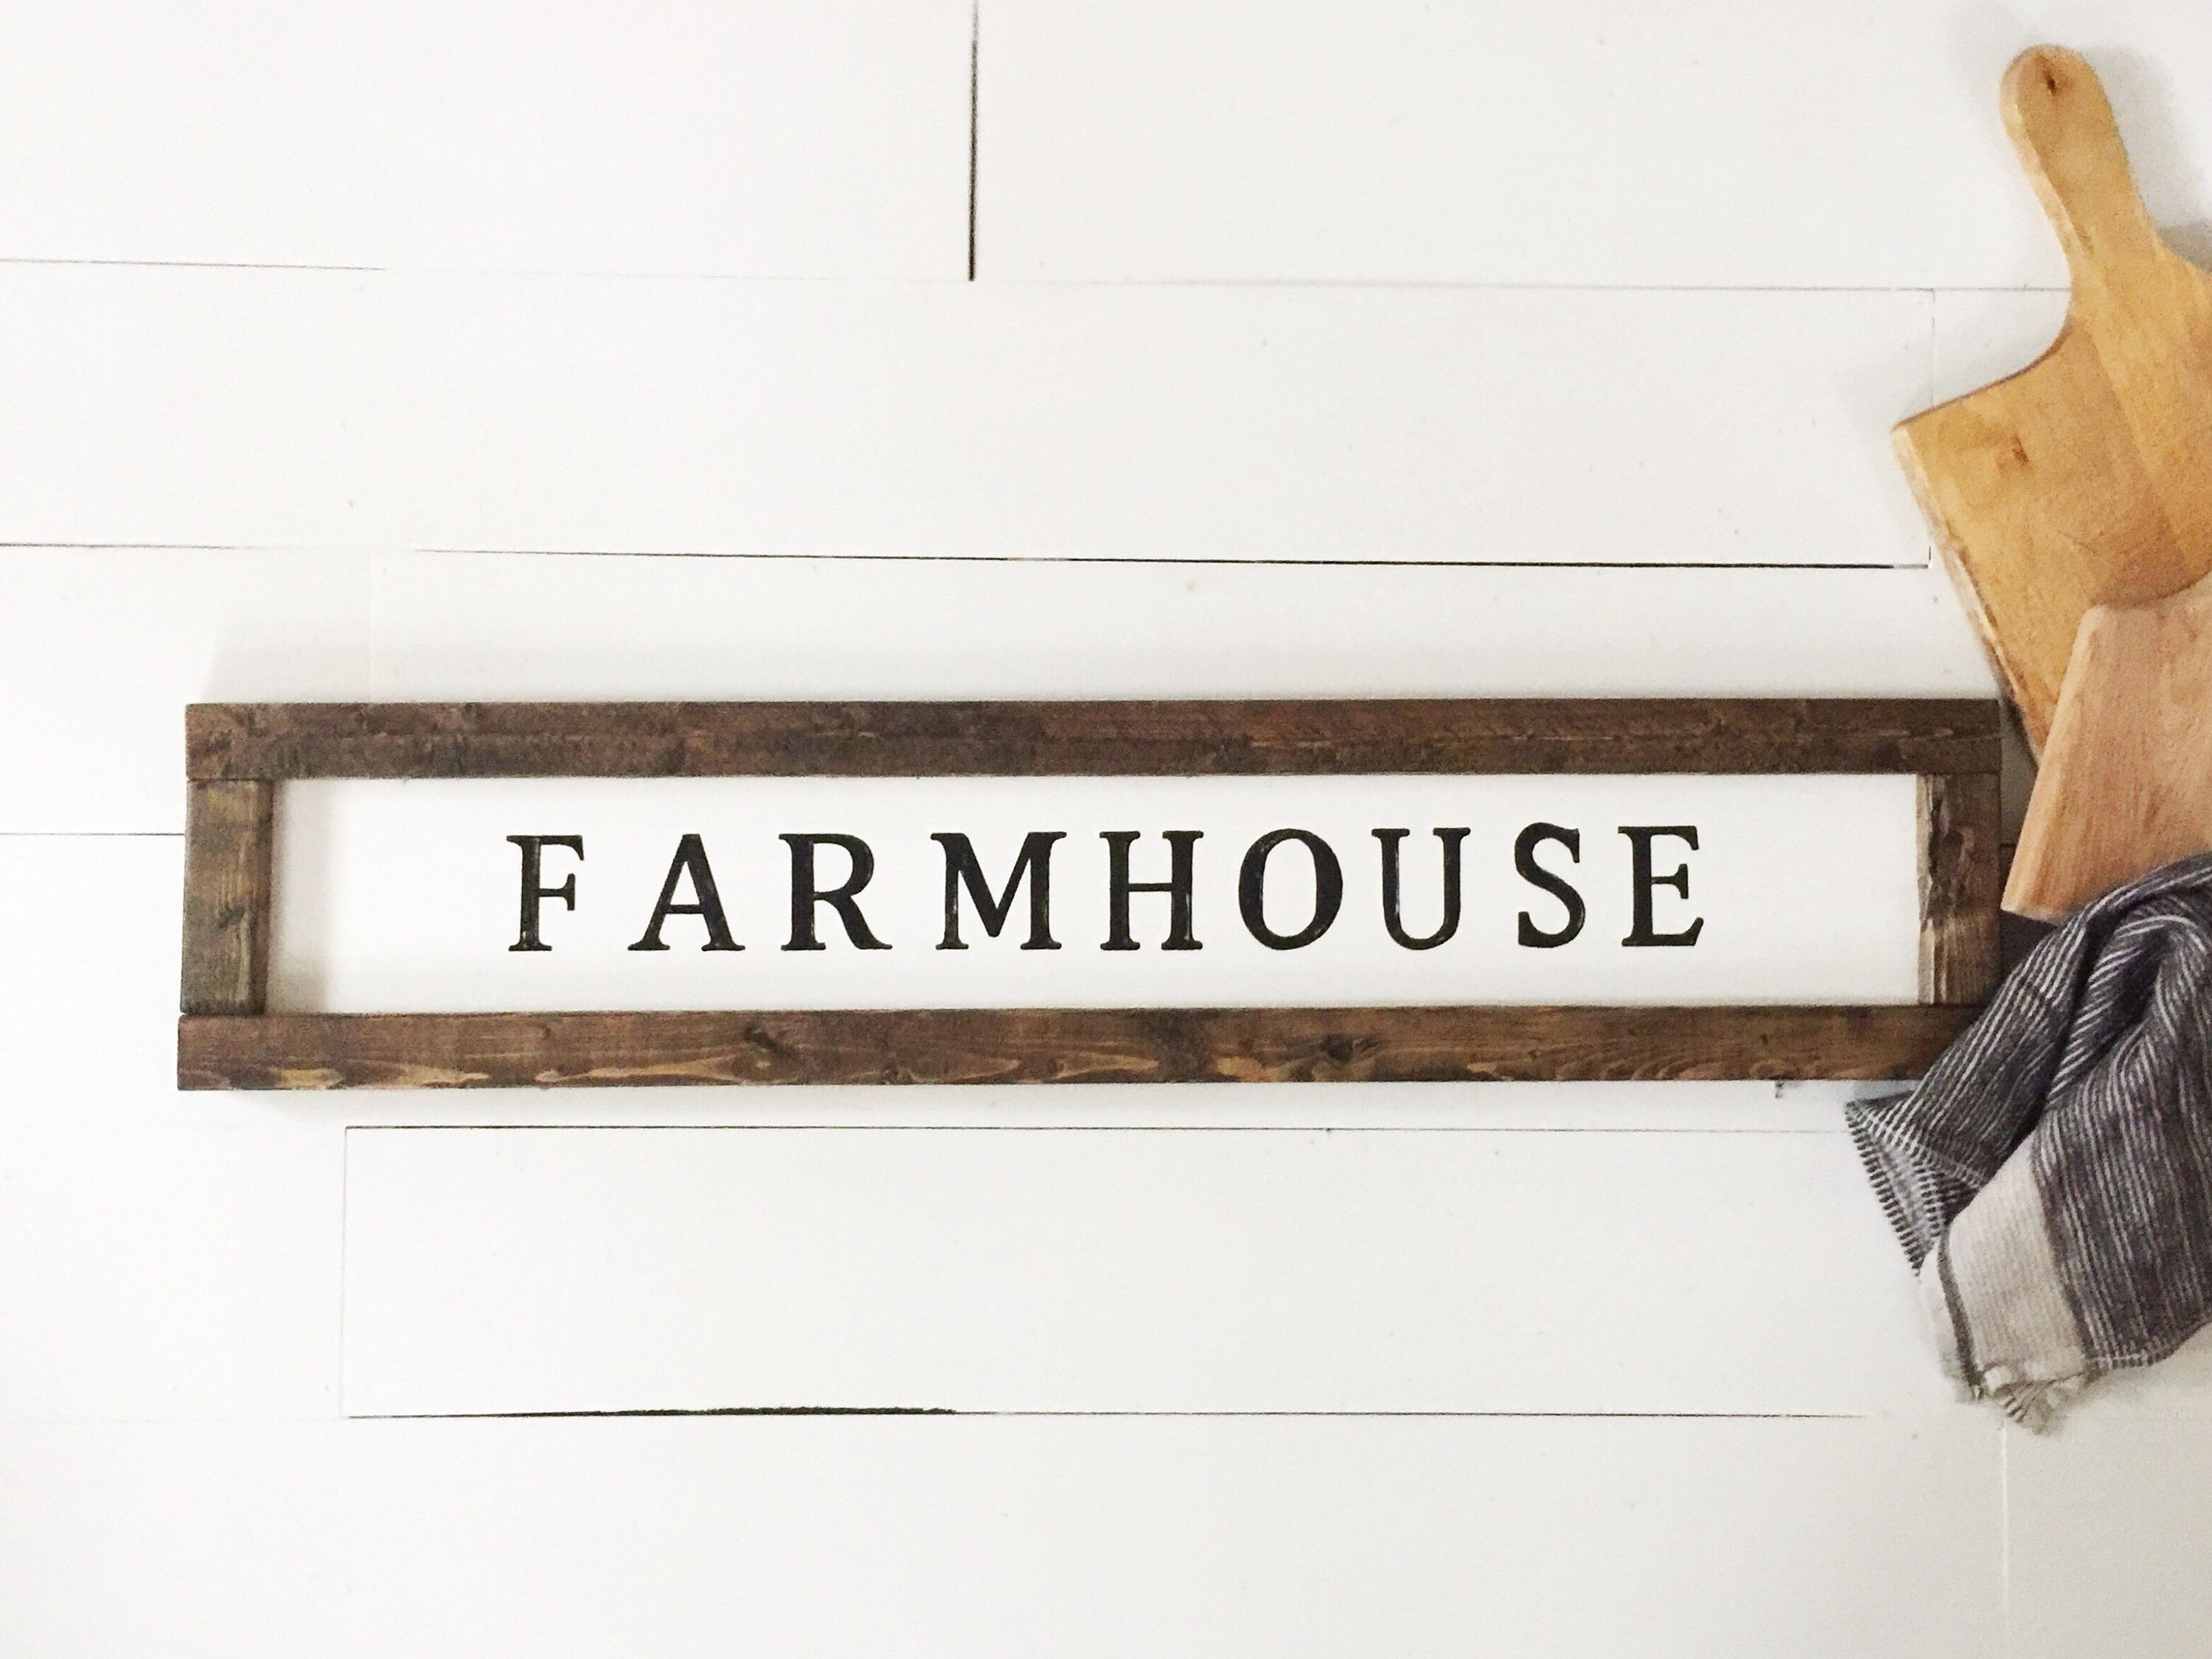 Farmhouse sign large horizontal 4 ft x 6 inch sign